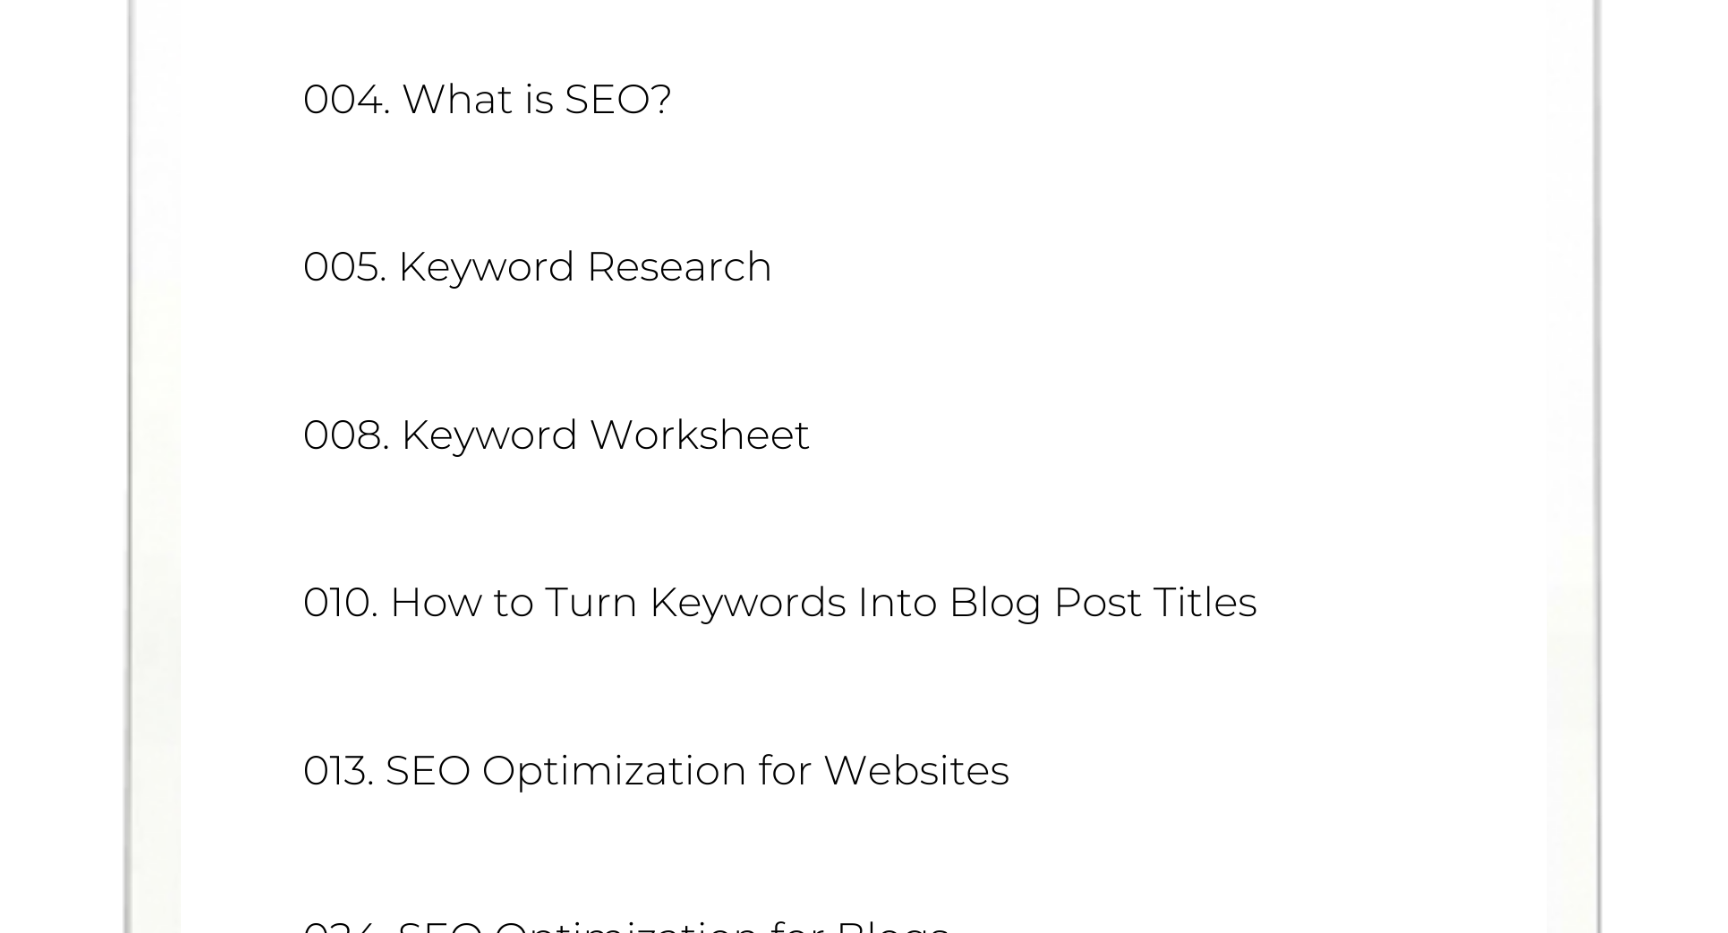 SEO IN WIX - GUIDE AND WORKBOOK